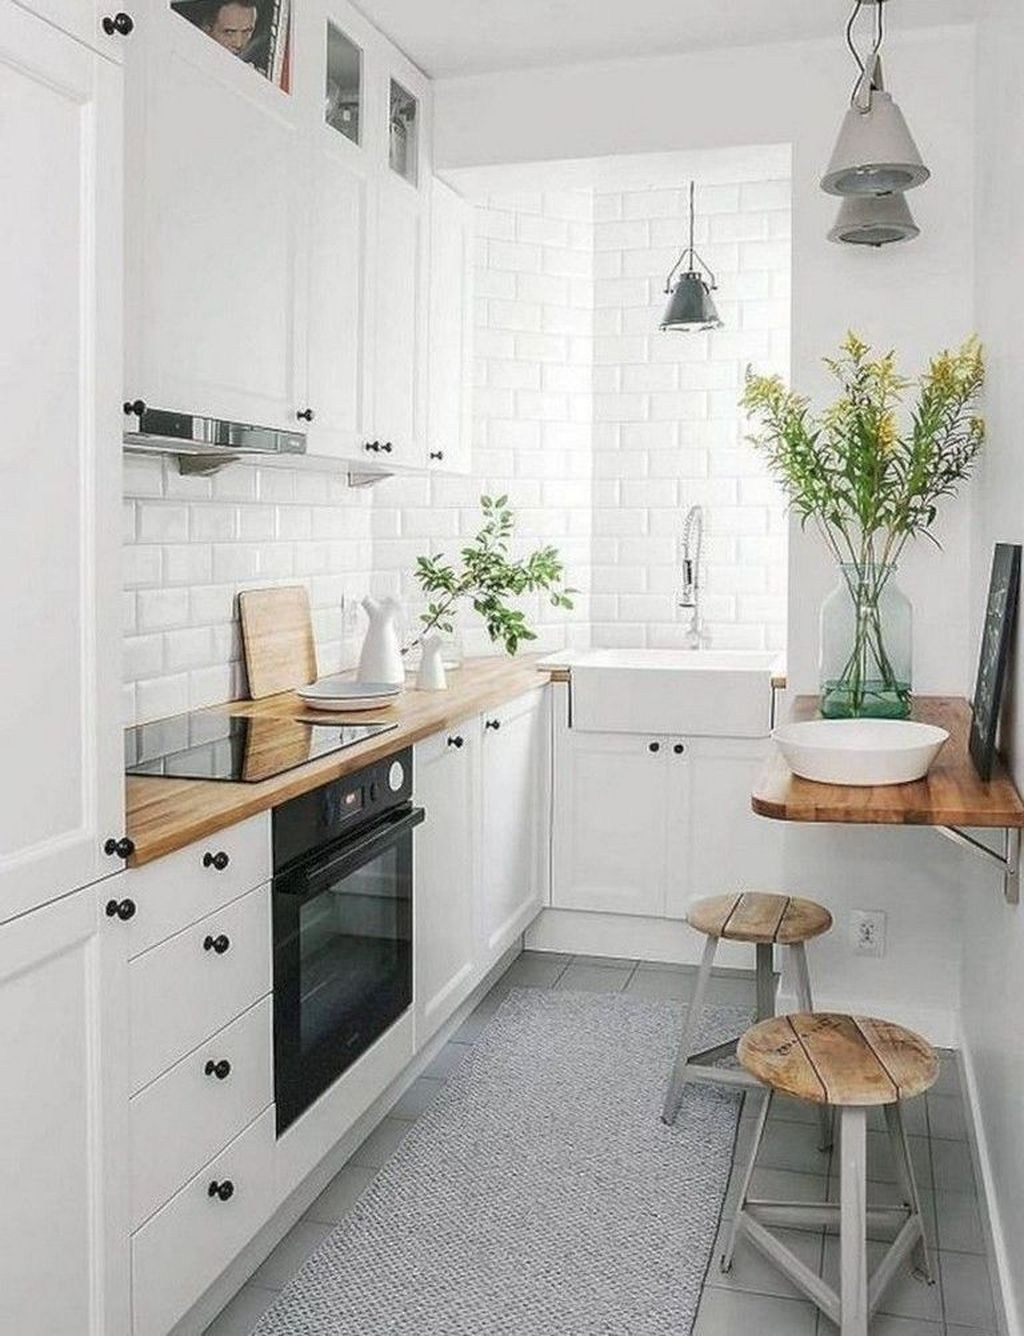 49 Creative Small Kitchen Design Ideas For Your Apartment With